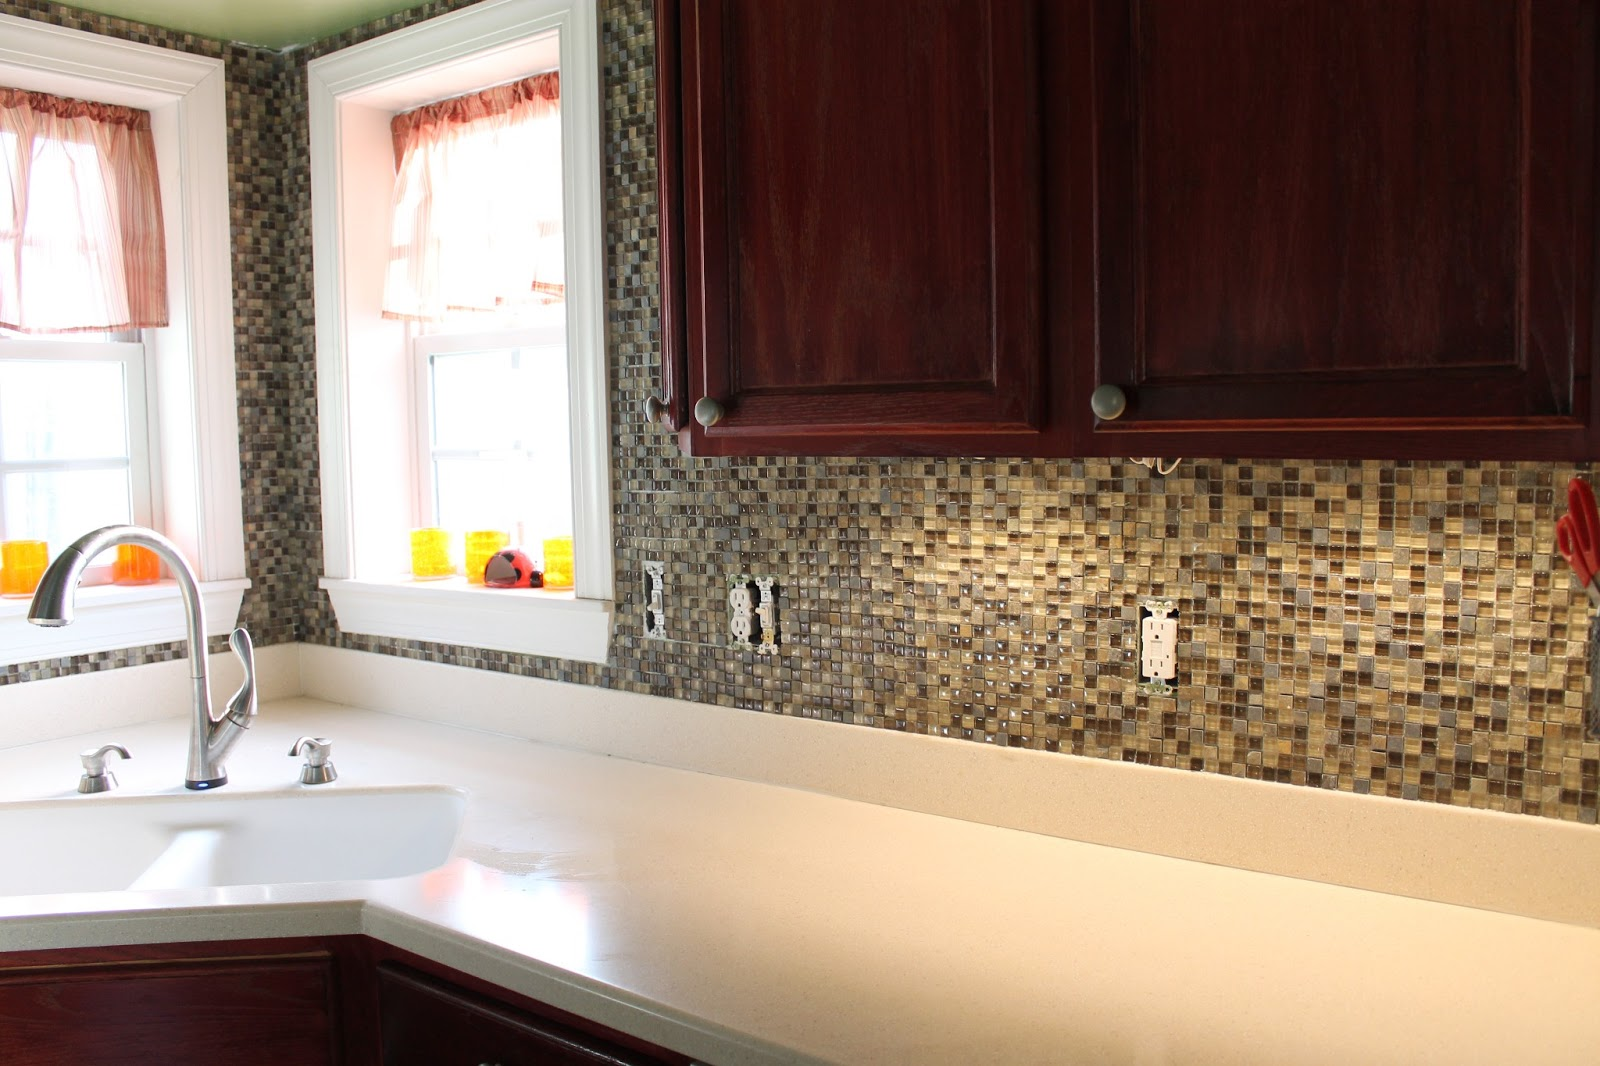 How to put up a backsplash in kitchen Backslash ideas